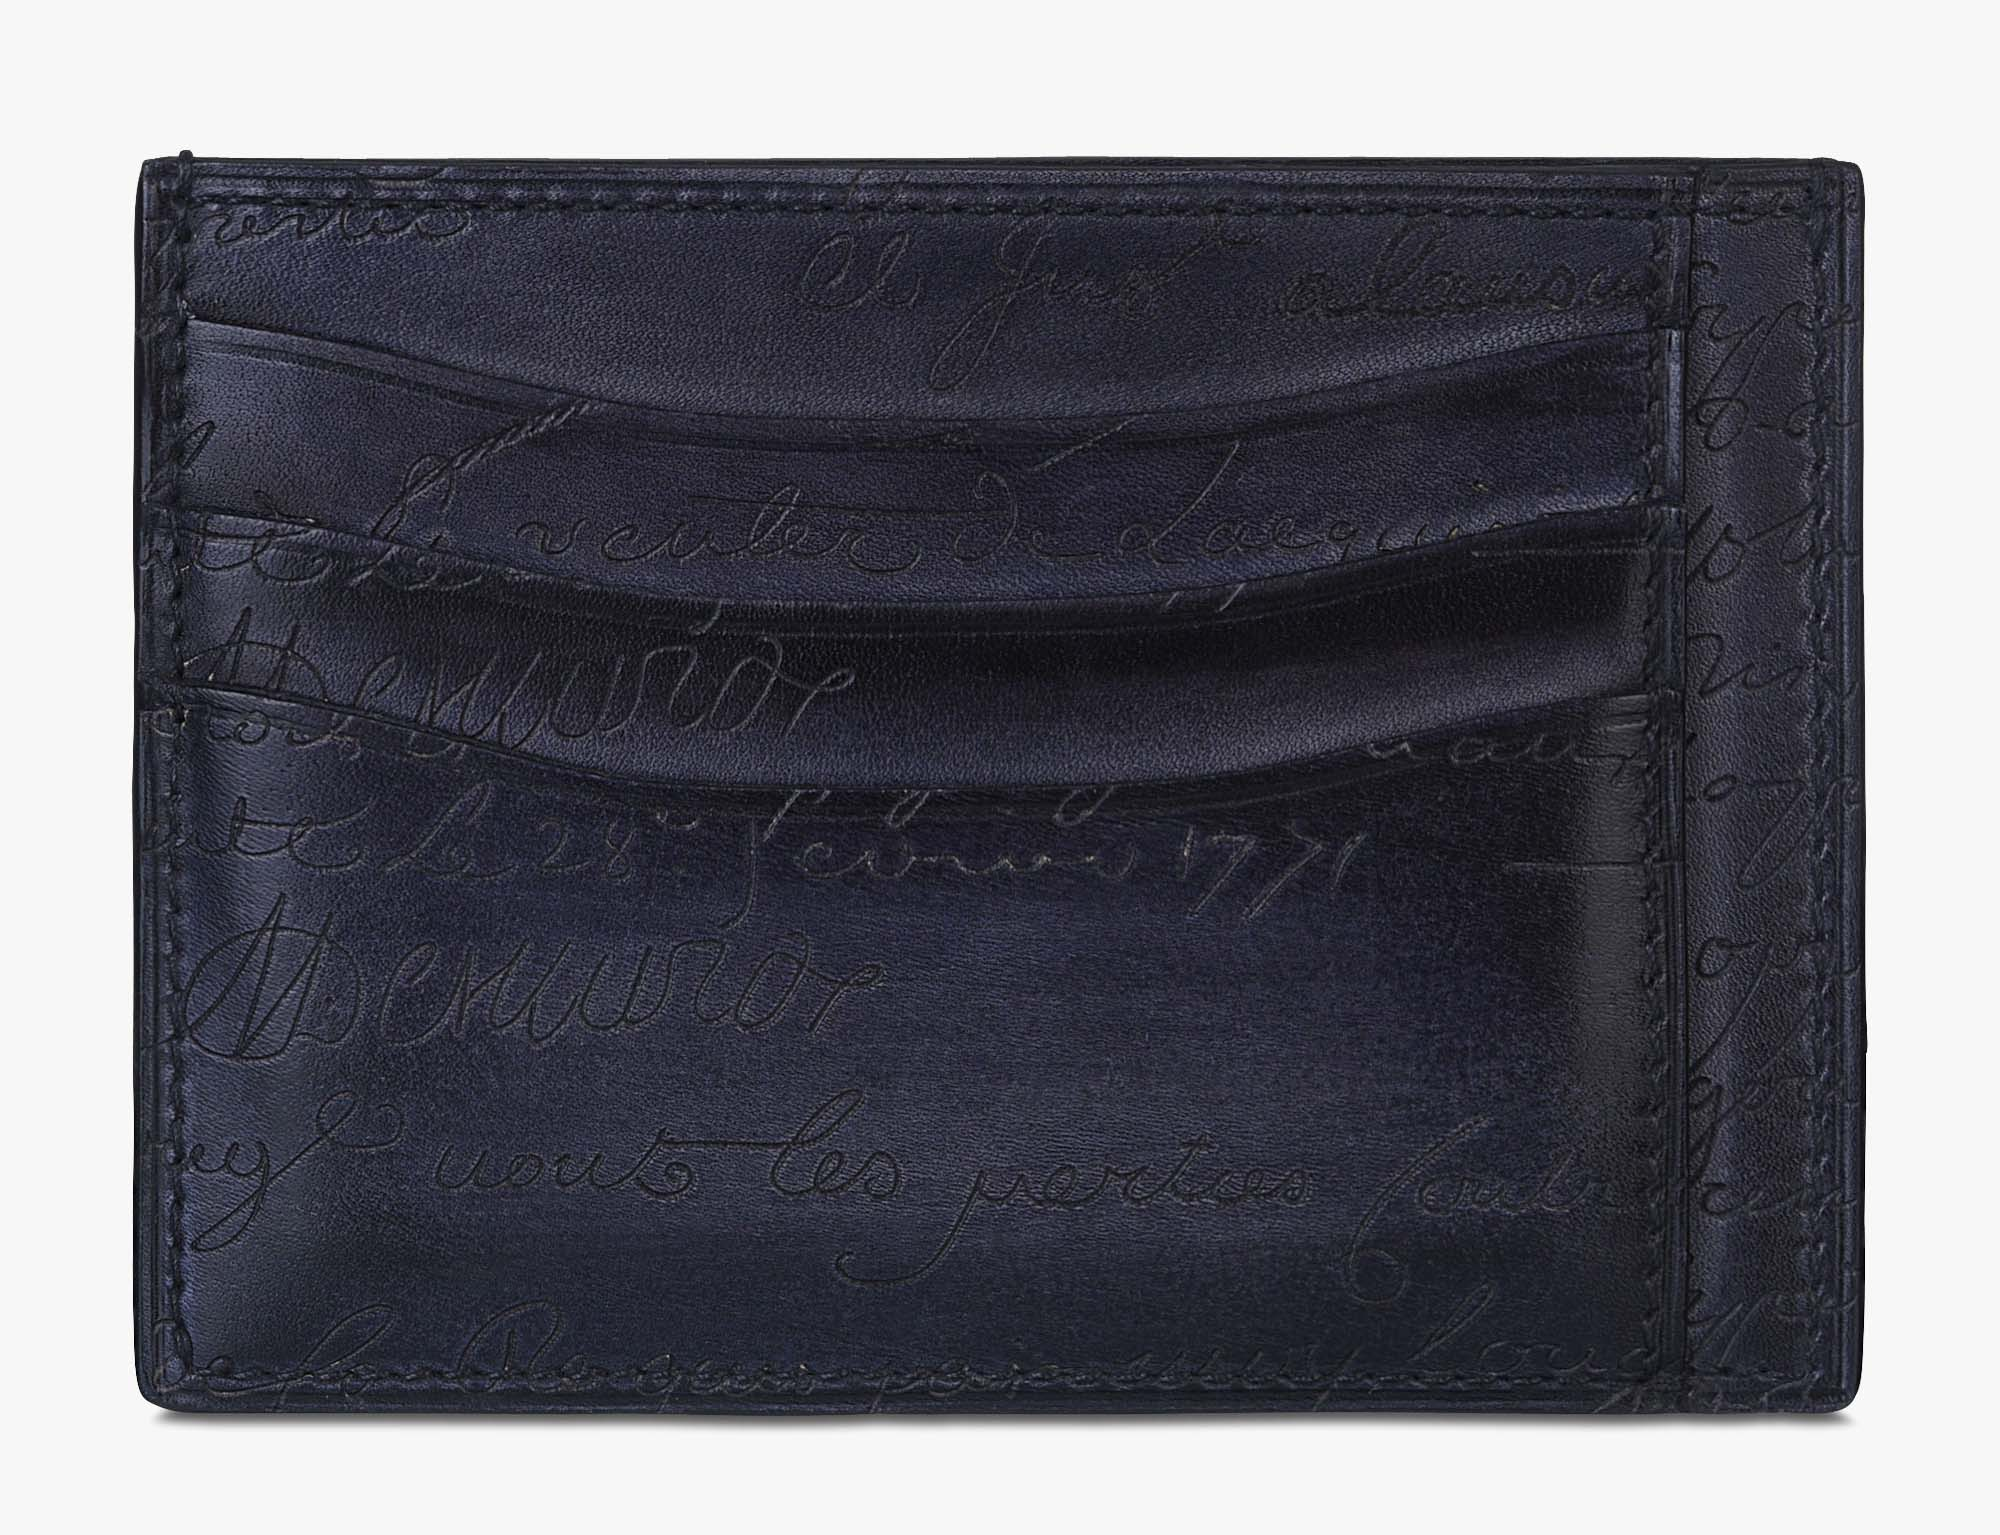 Bambou Tetris Scritto Leather Card Holder, NERO, hi-res